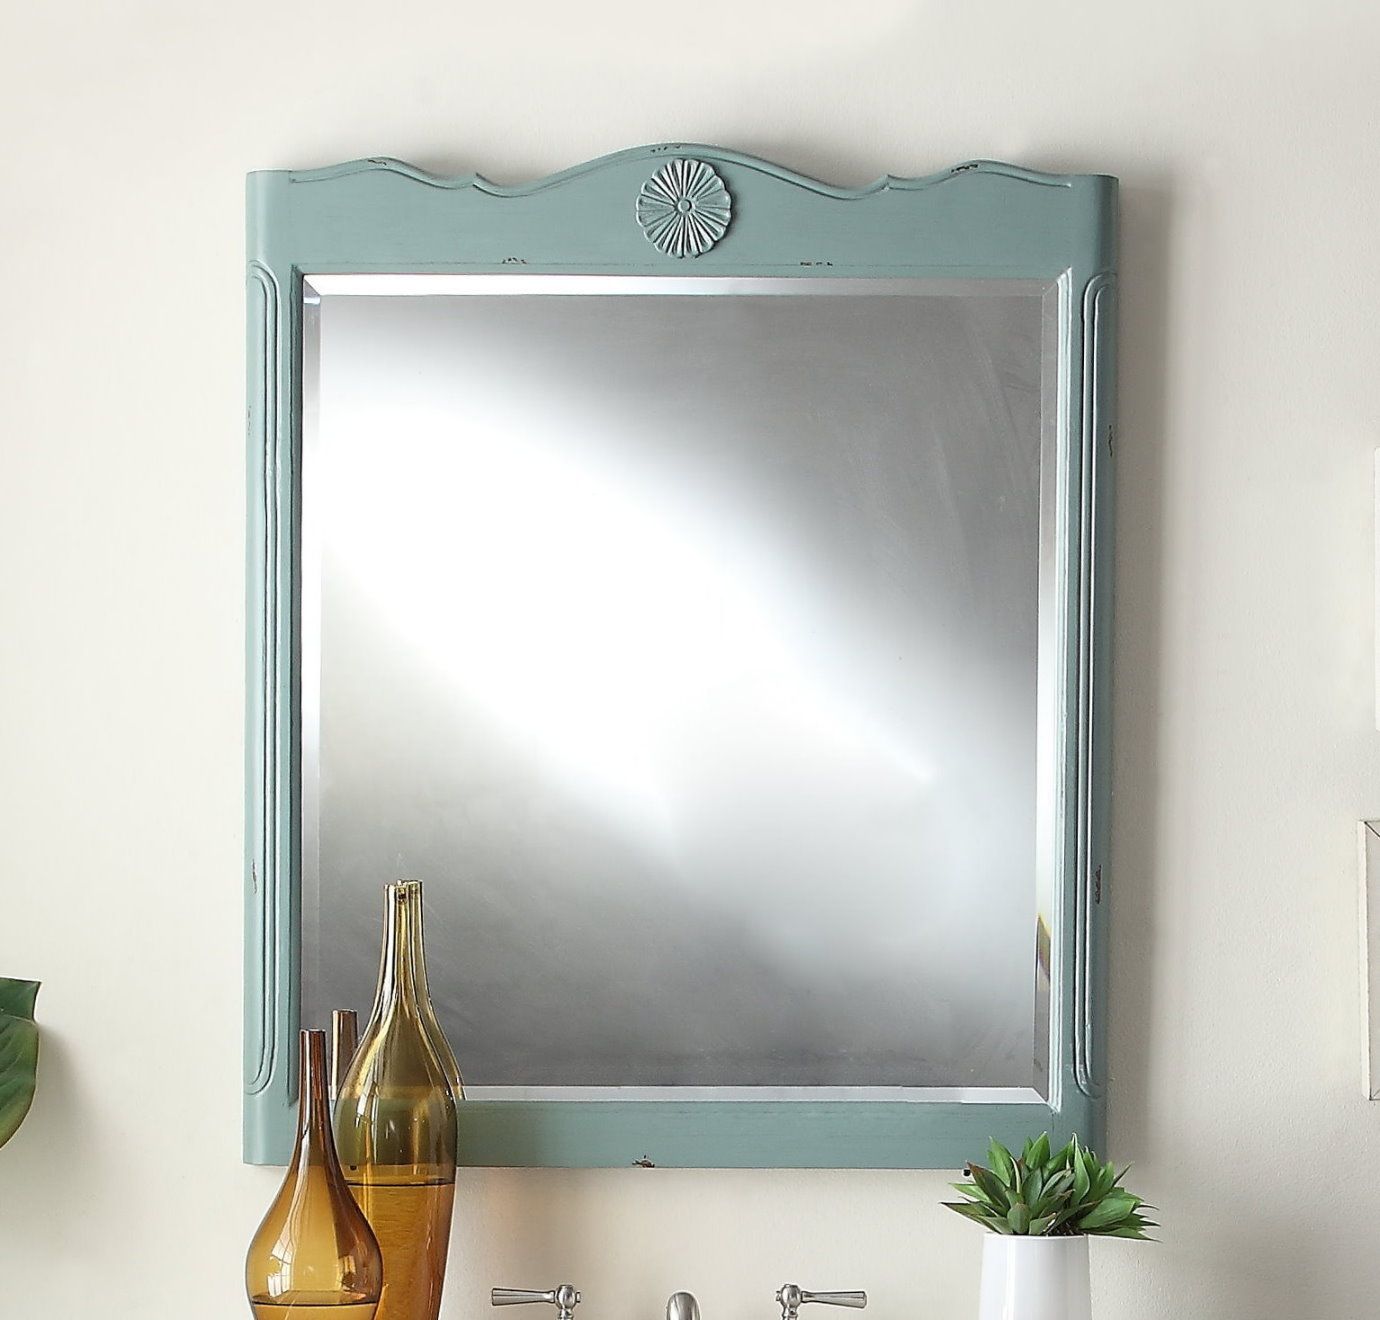 Light Blue Finish MirrorAdelina 42 inch Antique Cottage Bathroom Vanity Light Blue Finish  . Mirror Size For 36 Vanity. Home Design Ideas